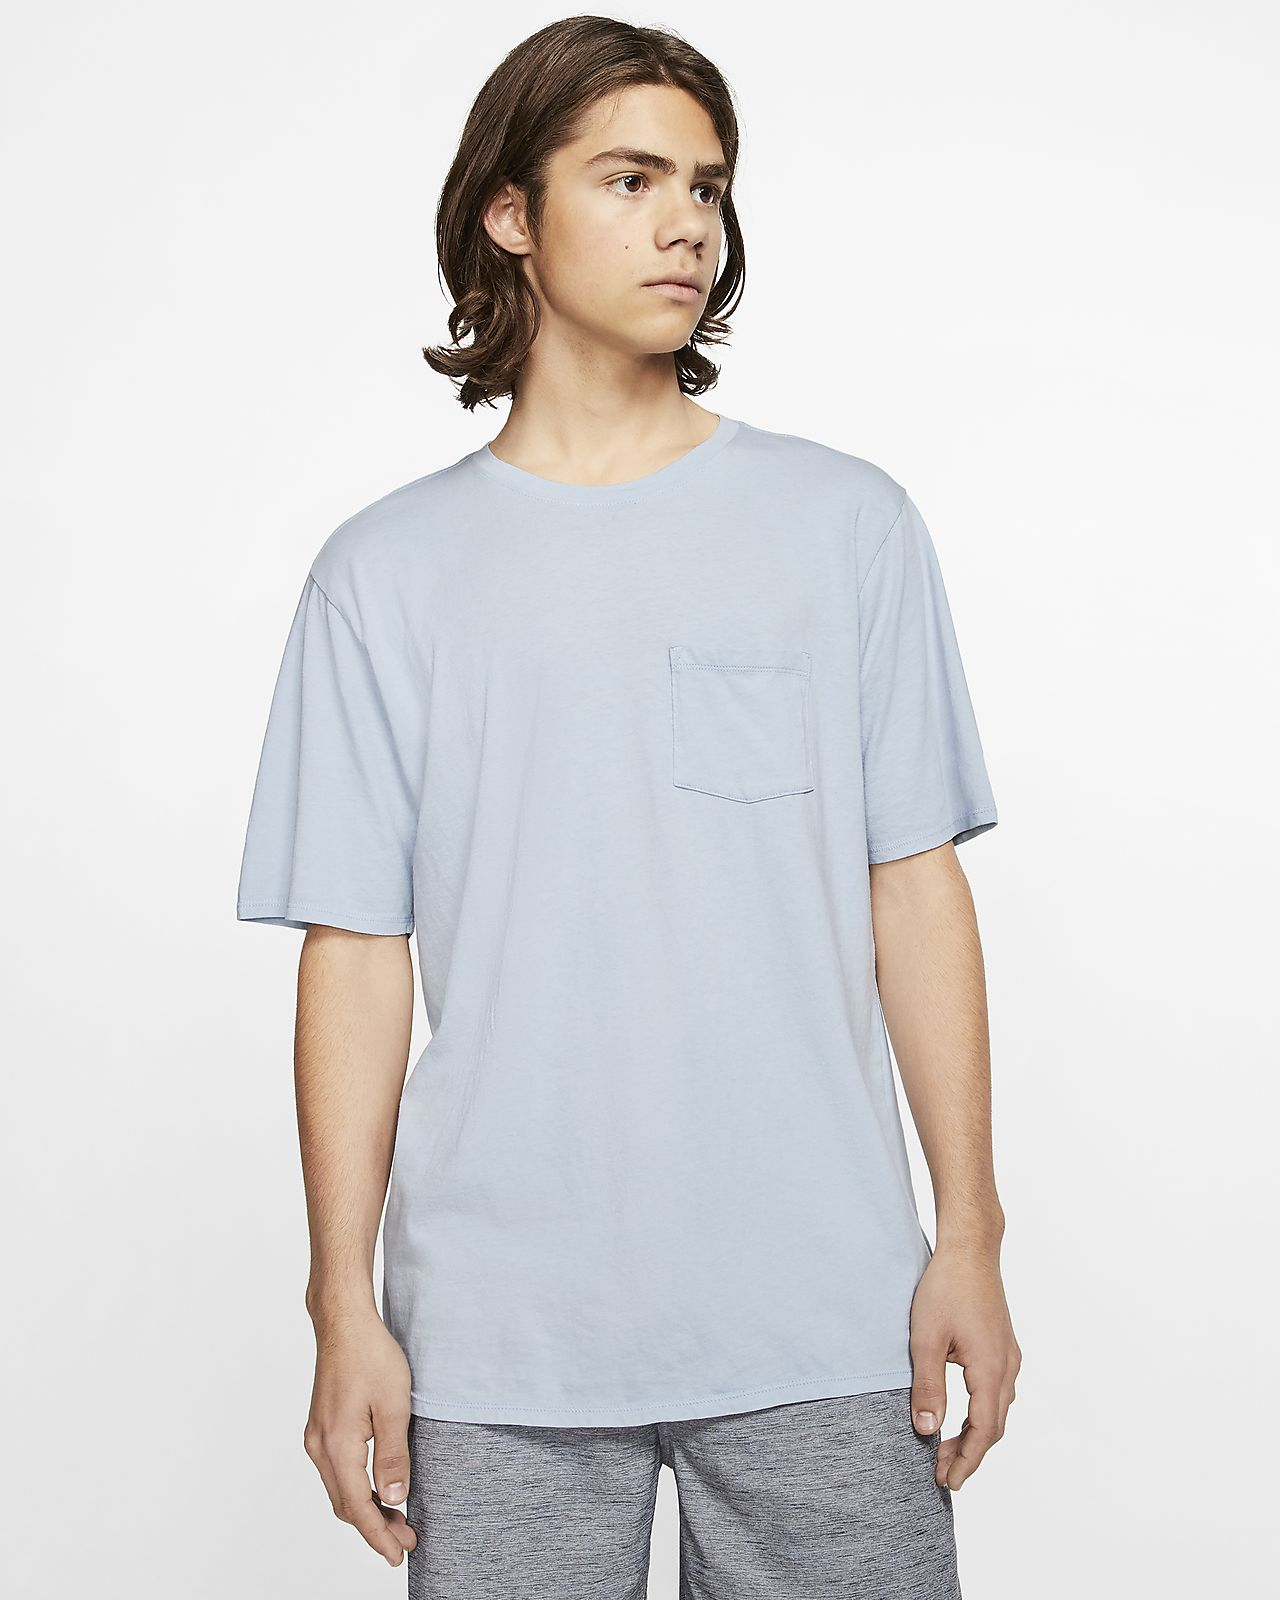 Hurley Staple Pocket Men's T-Shirt